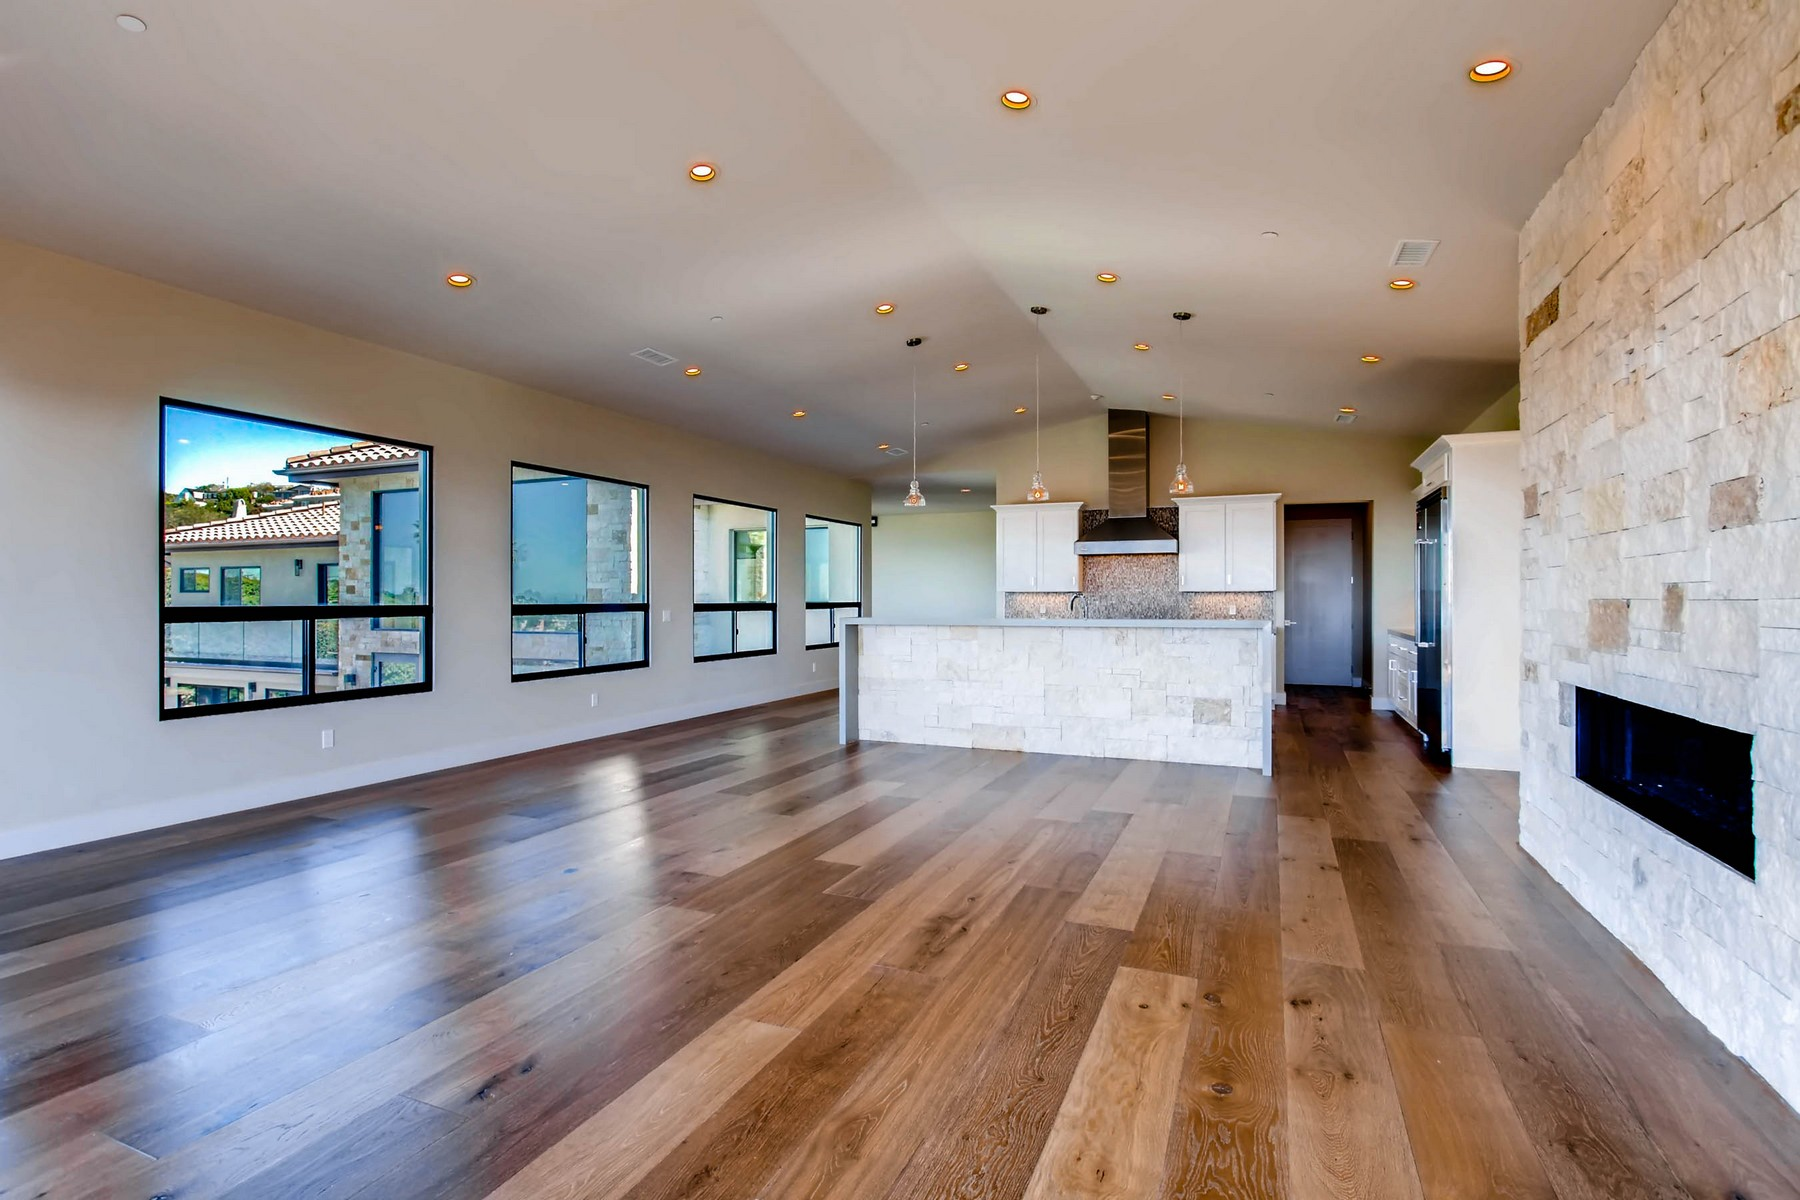 Additional photo for property listing at 1222 Muirlands Vista Way  La Jolla, California 92037 United States